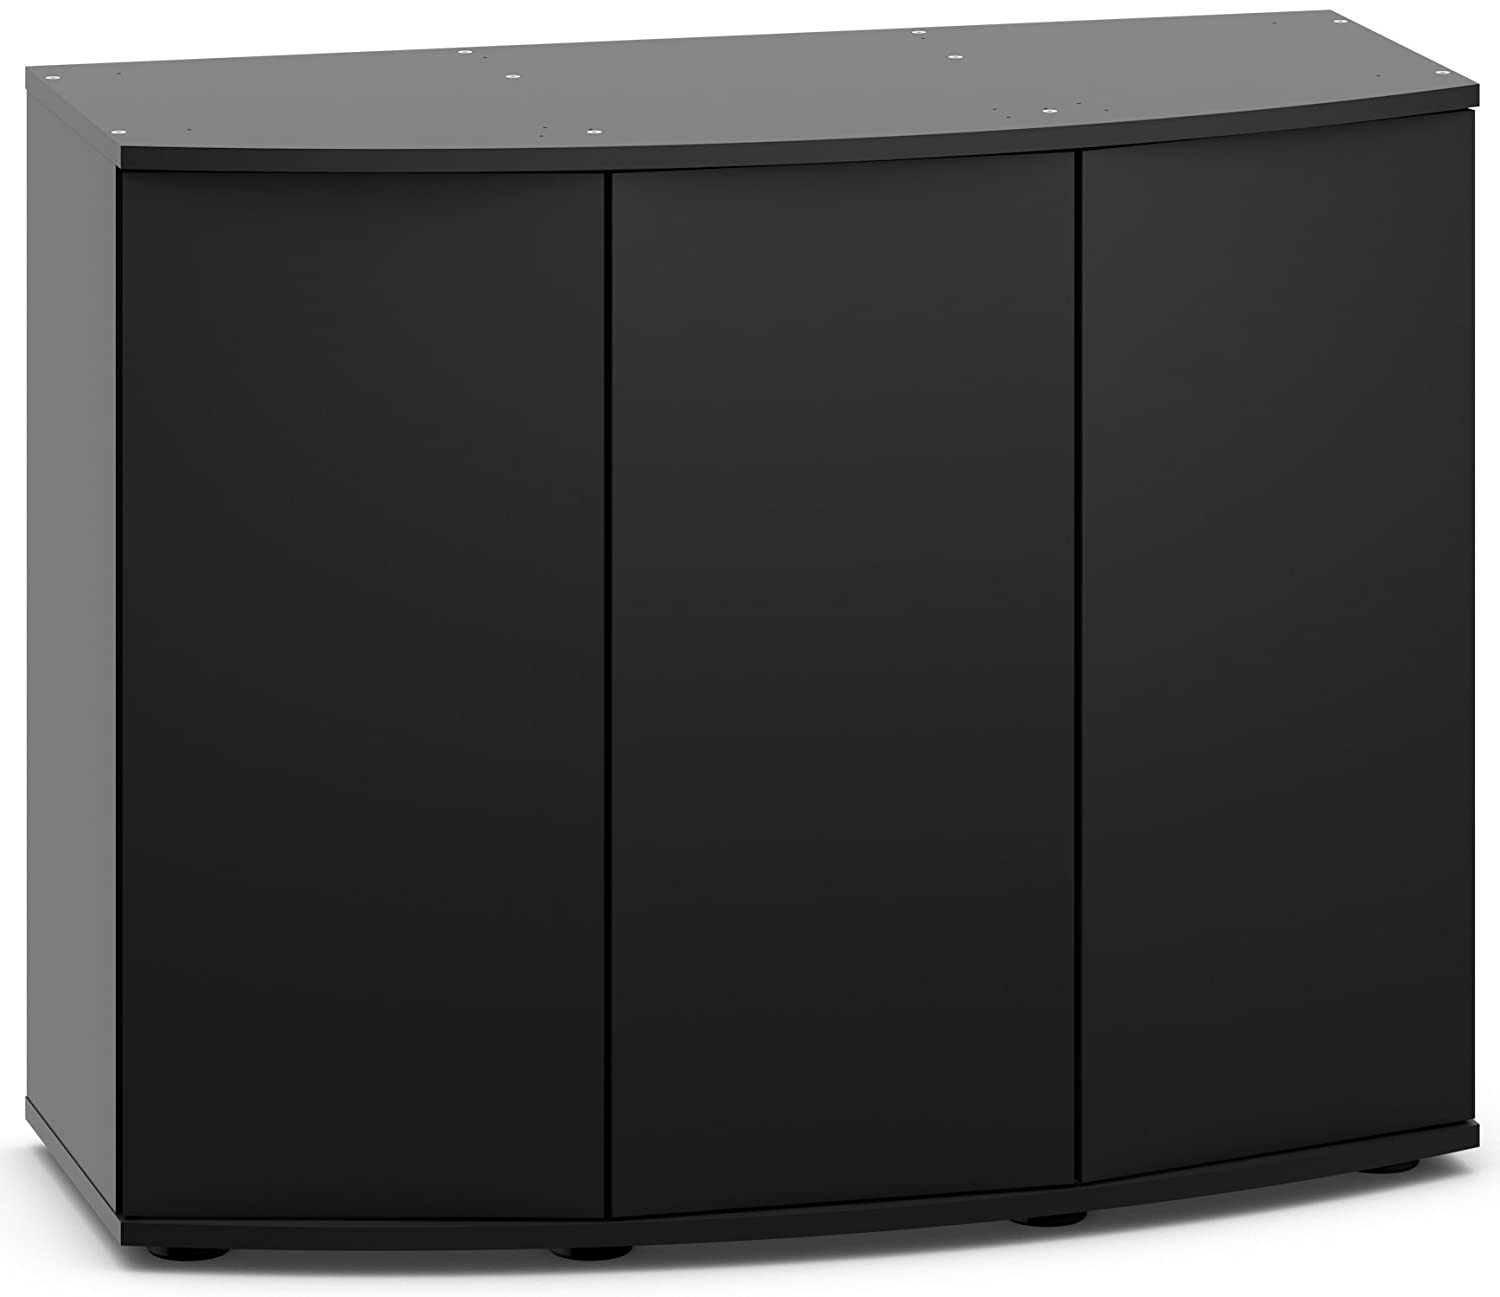 Jewel Vision 180 Black Cabinet Sbx